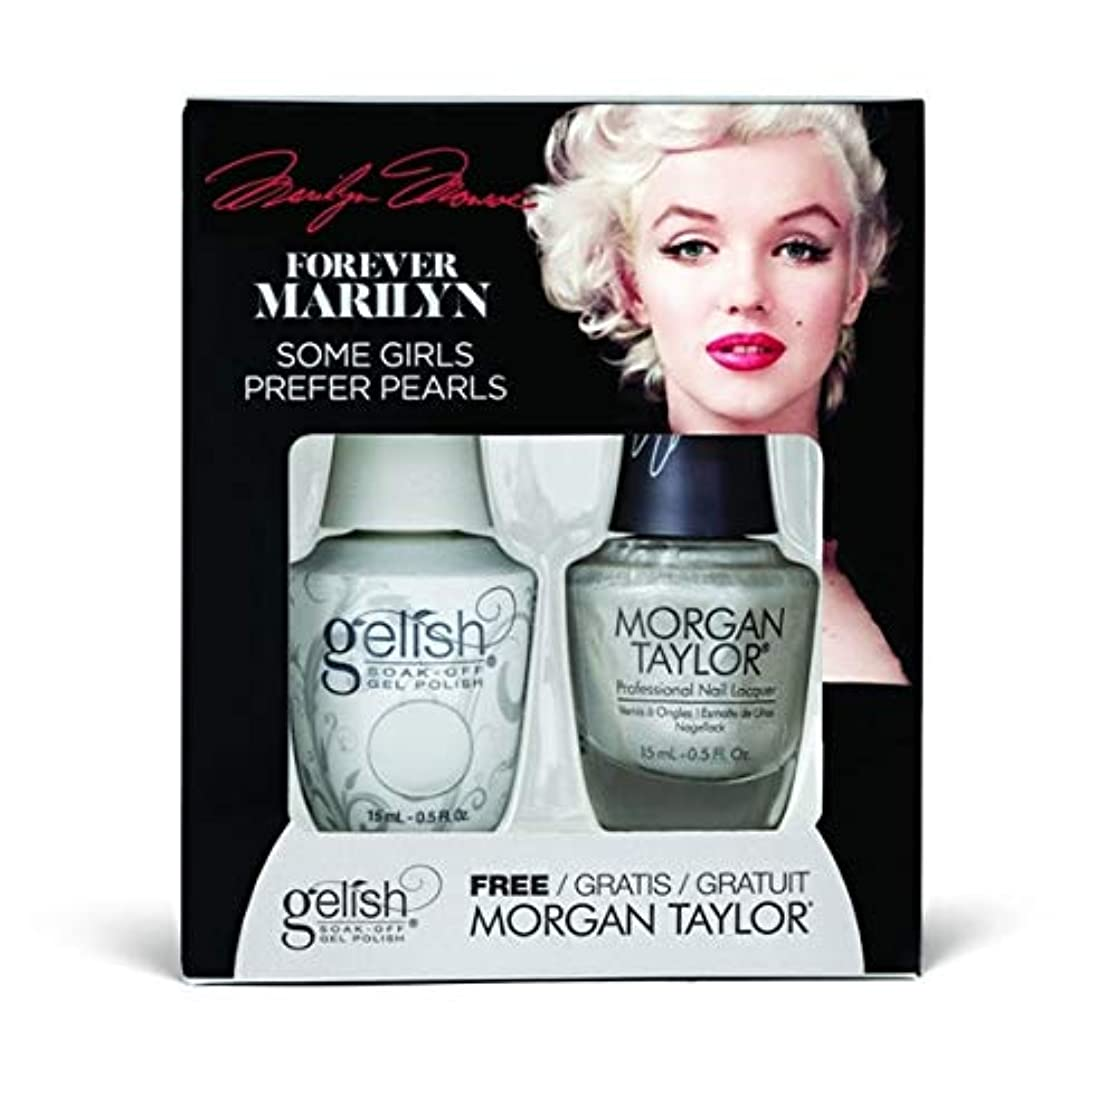 Harmony Gelish - Two of a Kind - Forever Marilyn Fall 2019 Collection - Some Girls Prefer Pearls - 15ml / 0.5oz